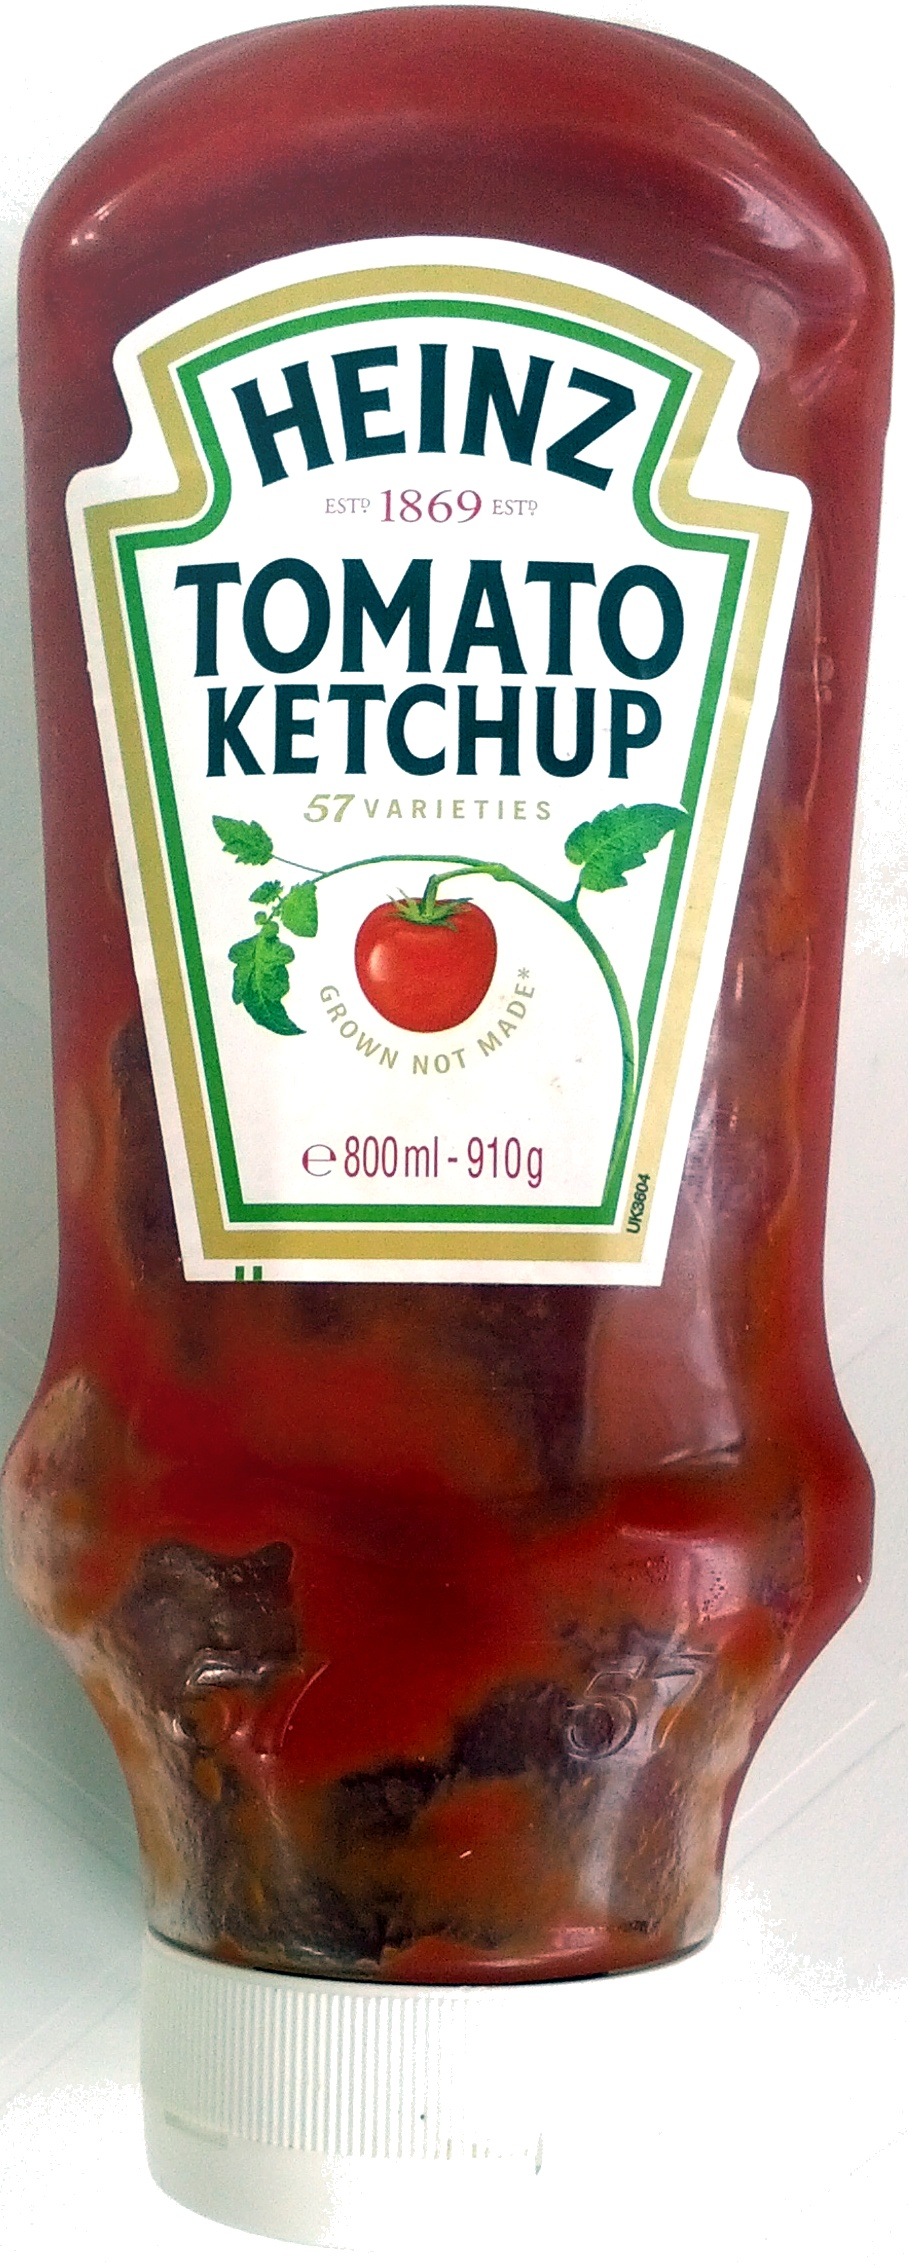 Heinz Tomato Ketchup - Product